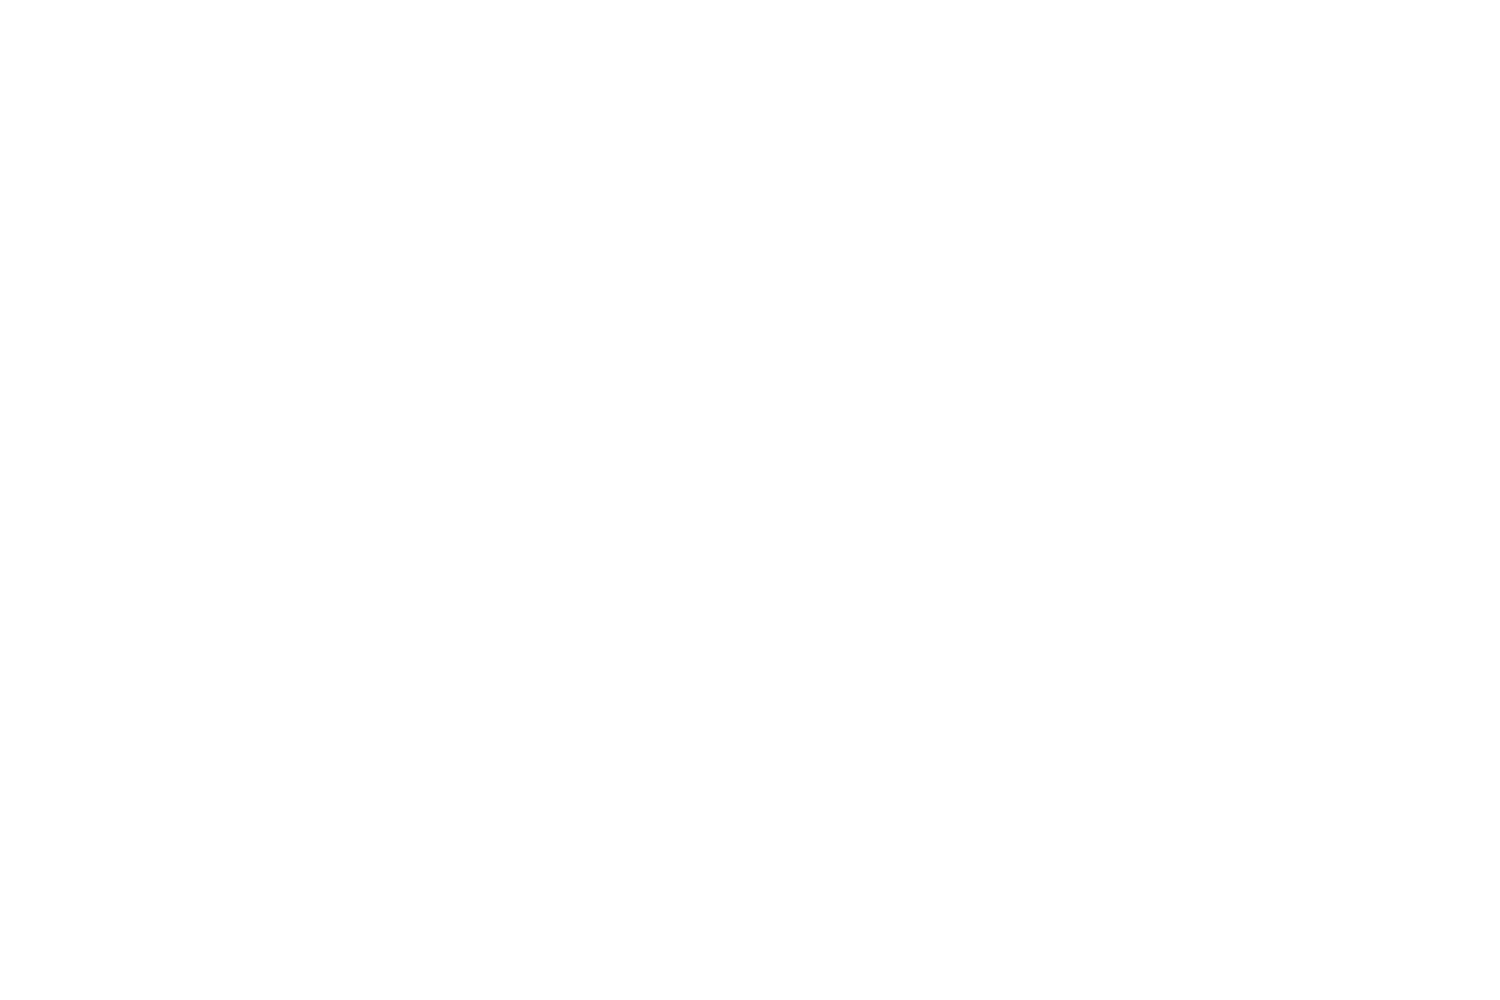 Nichole Waters Photography